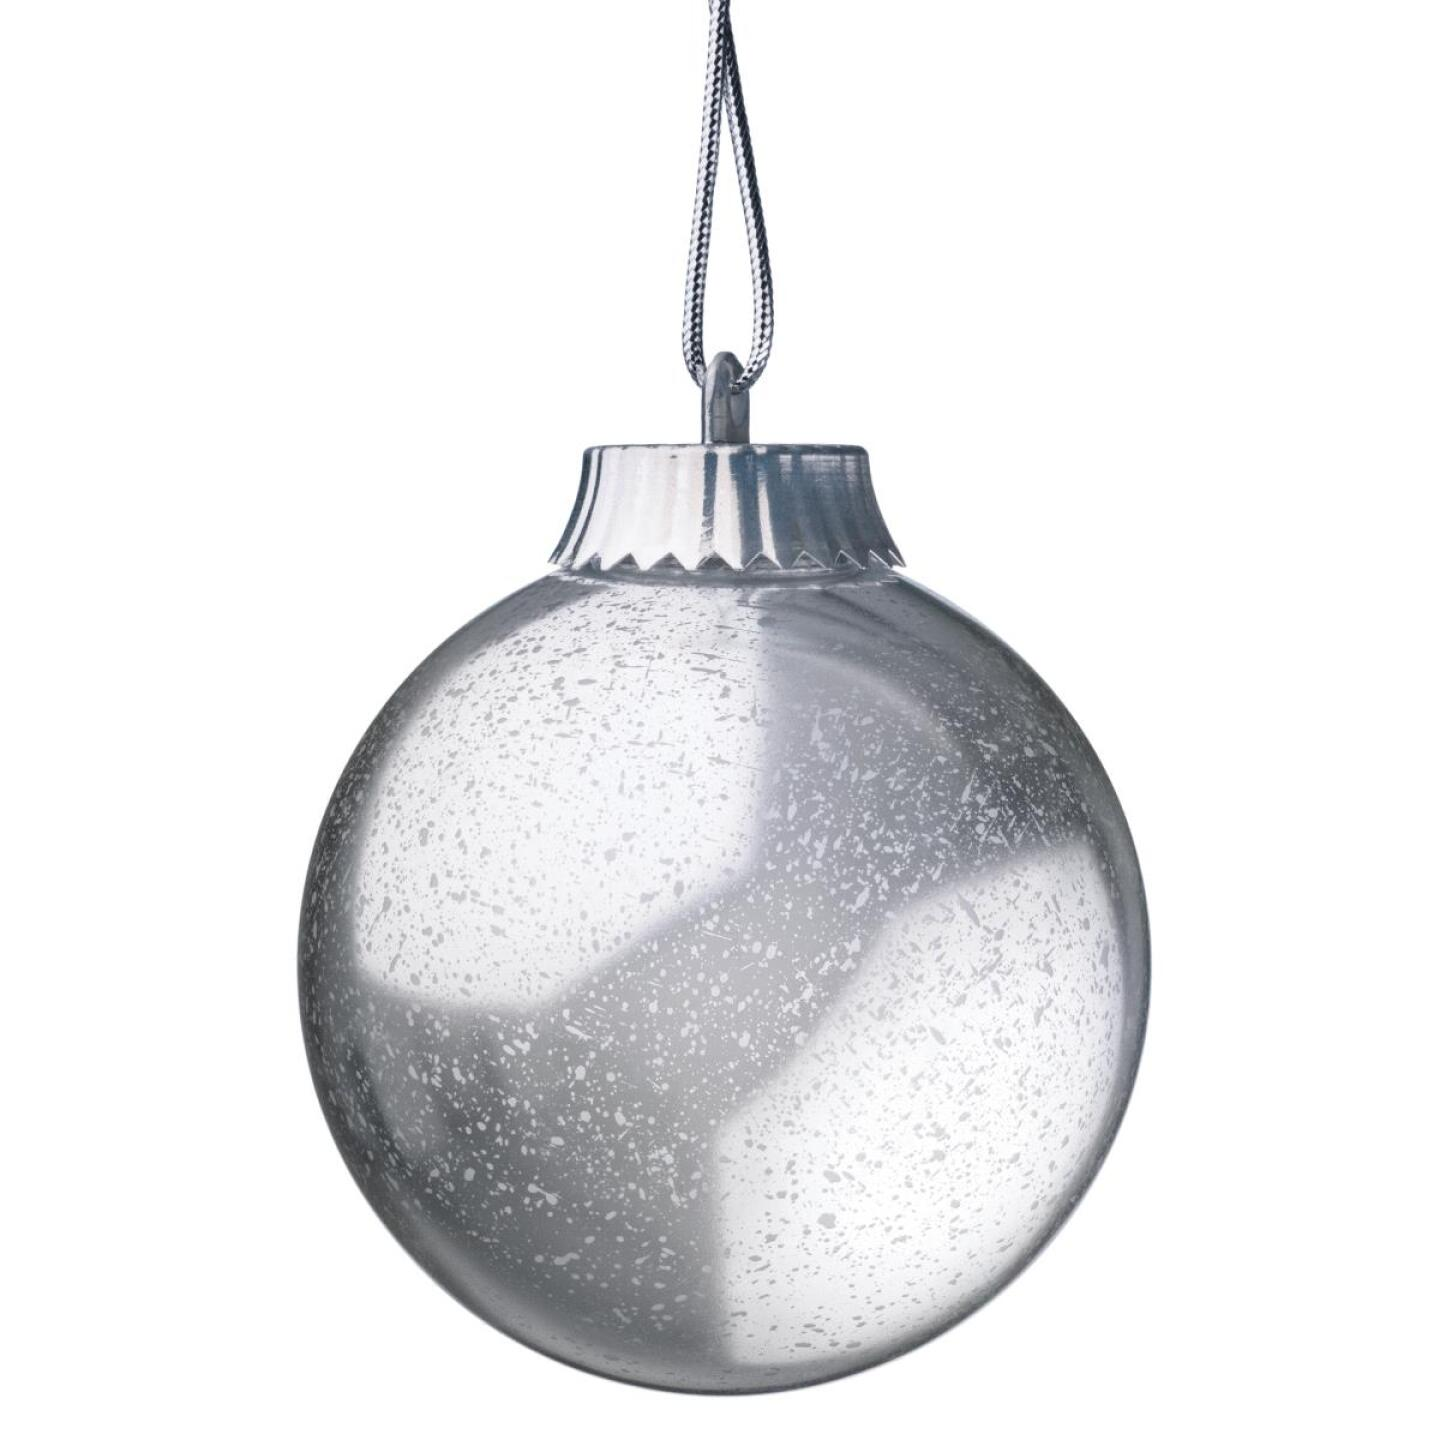 Xodus 5 In. Shatter Resistant LED Outdoor Christmas Ornament Image 3